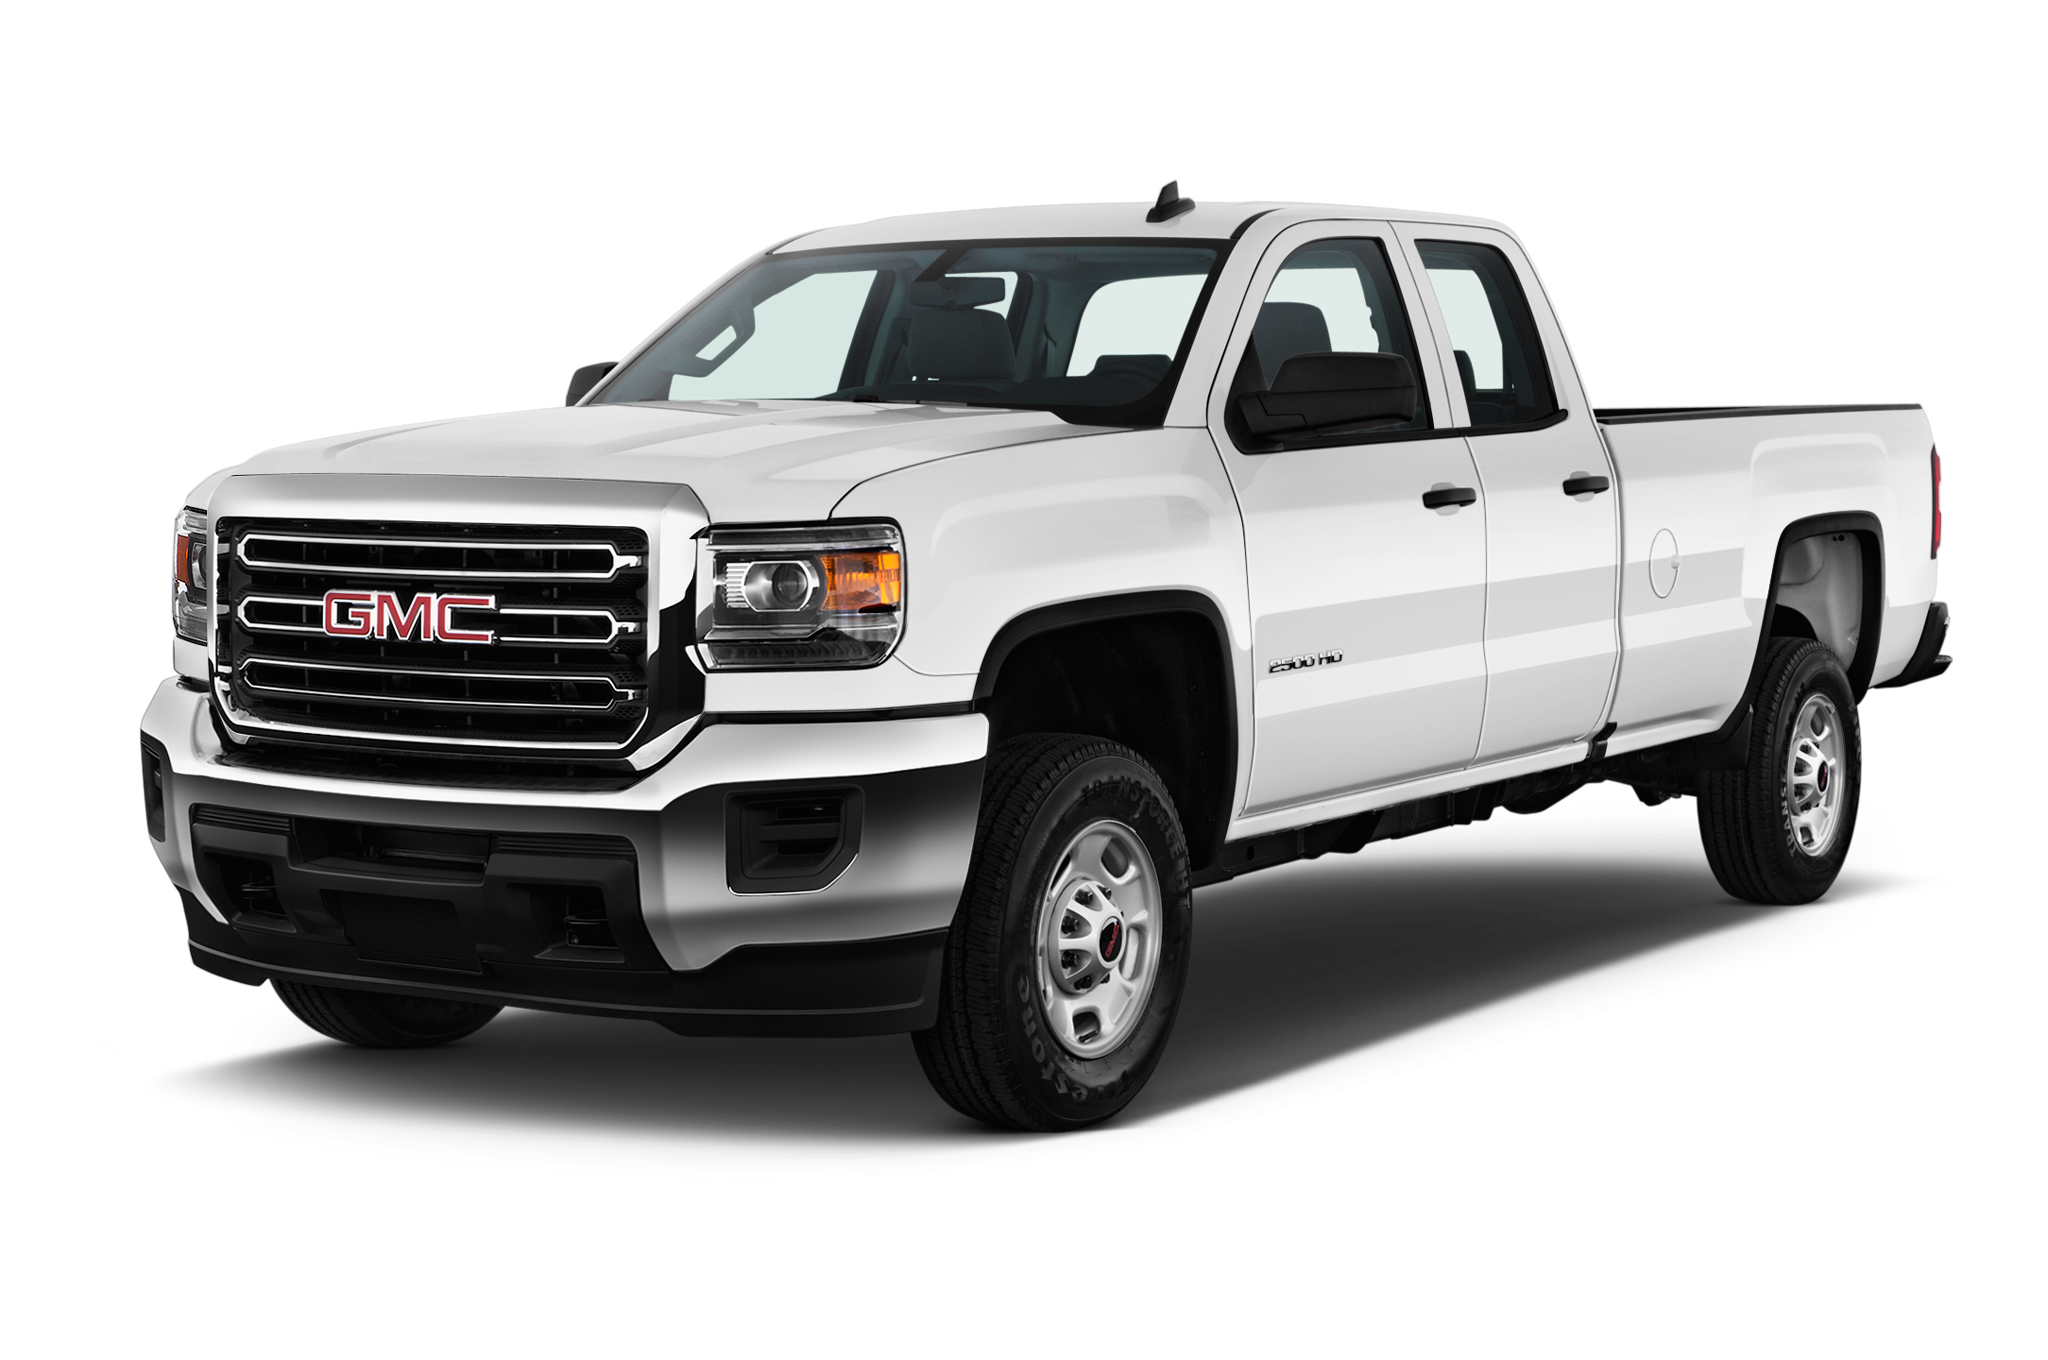 Chevy drawing duramax. Gmc sierra and